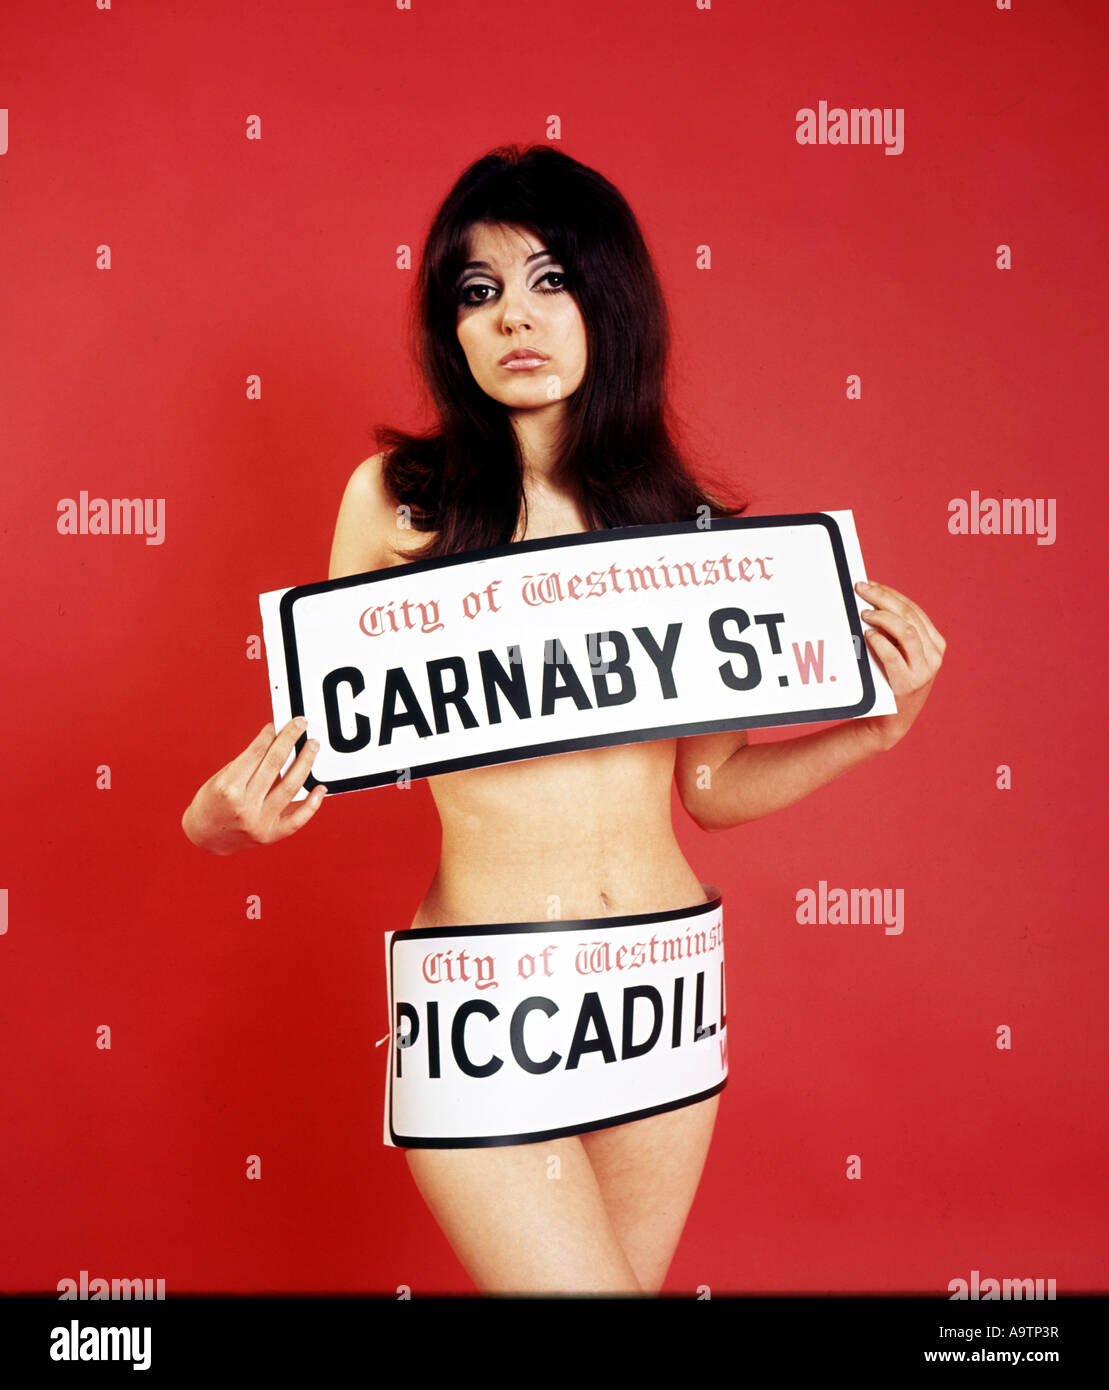 CARNABY STREET plastic street signs in 1966 - Stock Image